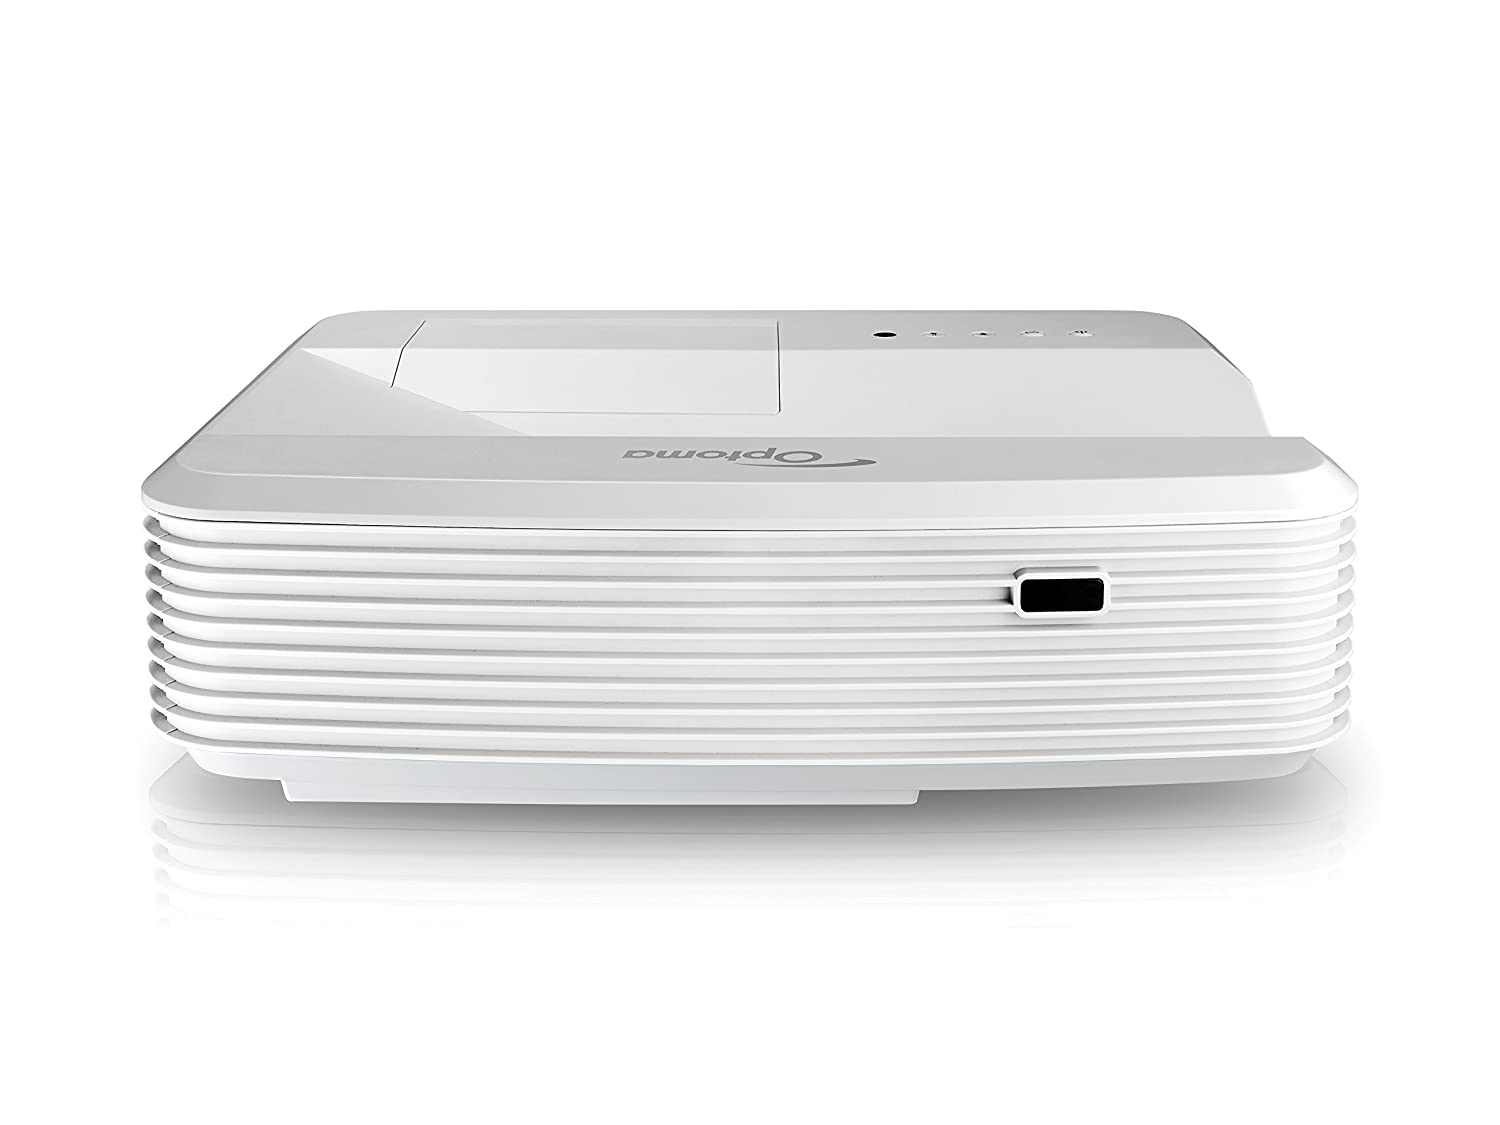 Optoma GT5600 Ultra Short Throw 3600 Lumens 1080p Gaming Projector OPTOMA TECHNOLOGY